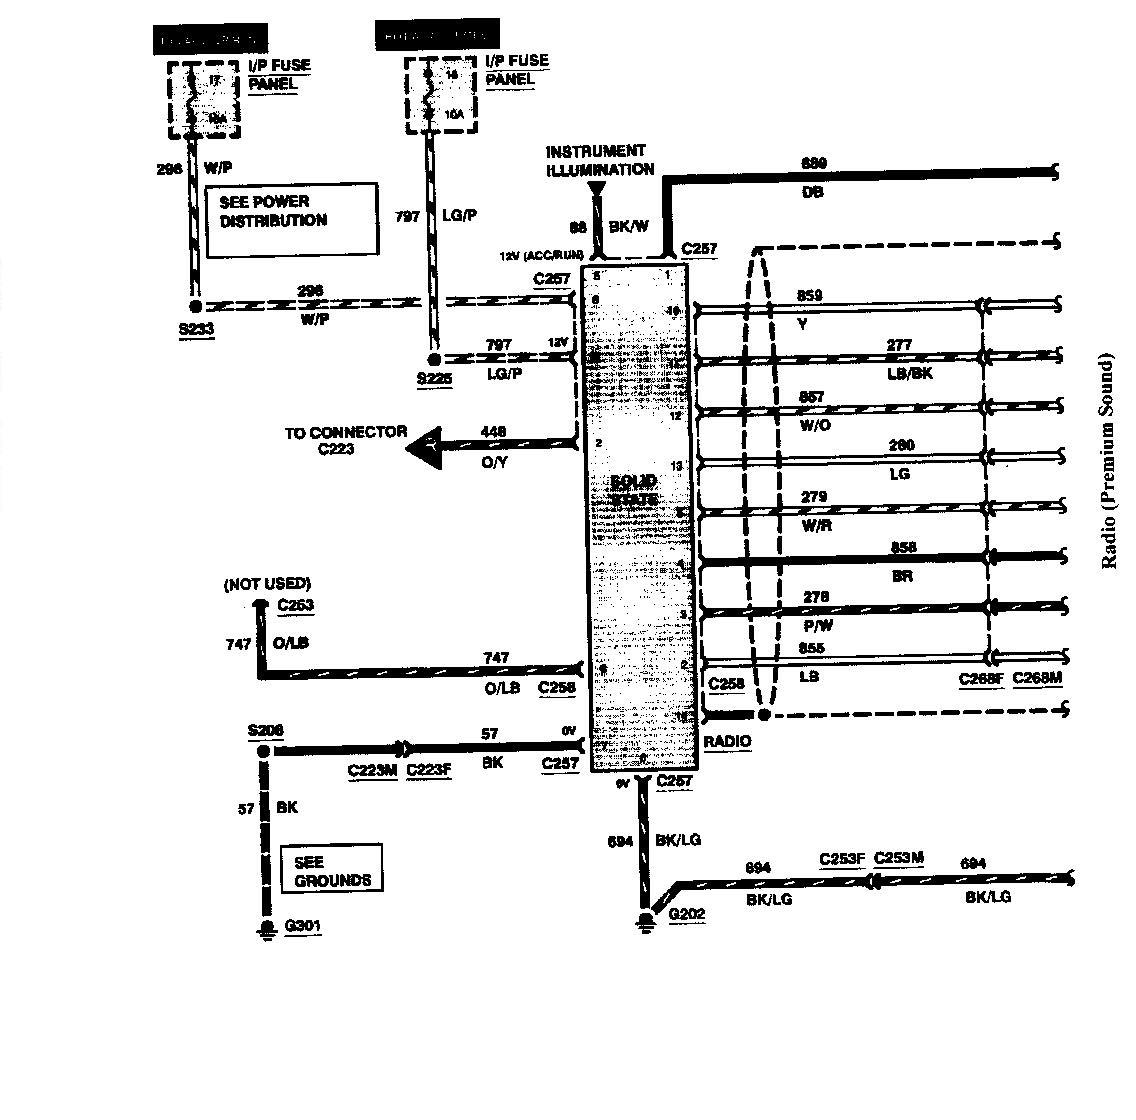 95Mark8 Premium Sound Wiring 95 mark 8 jbl wiring diagram needed lincolns online message forum 2002 lincoln ls radio wiring harness at bakdesigns.co